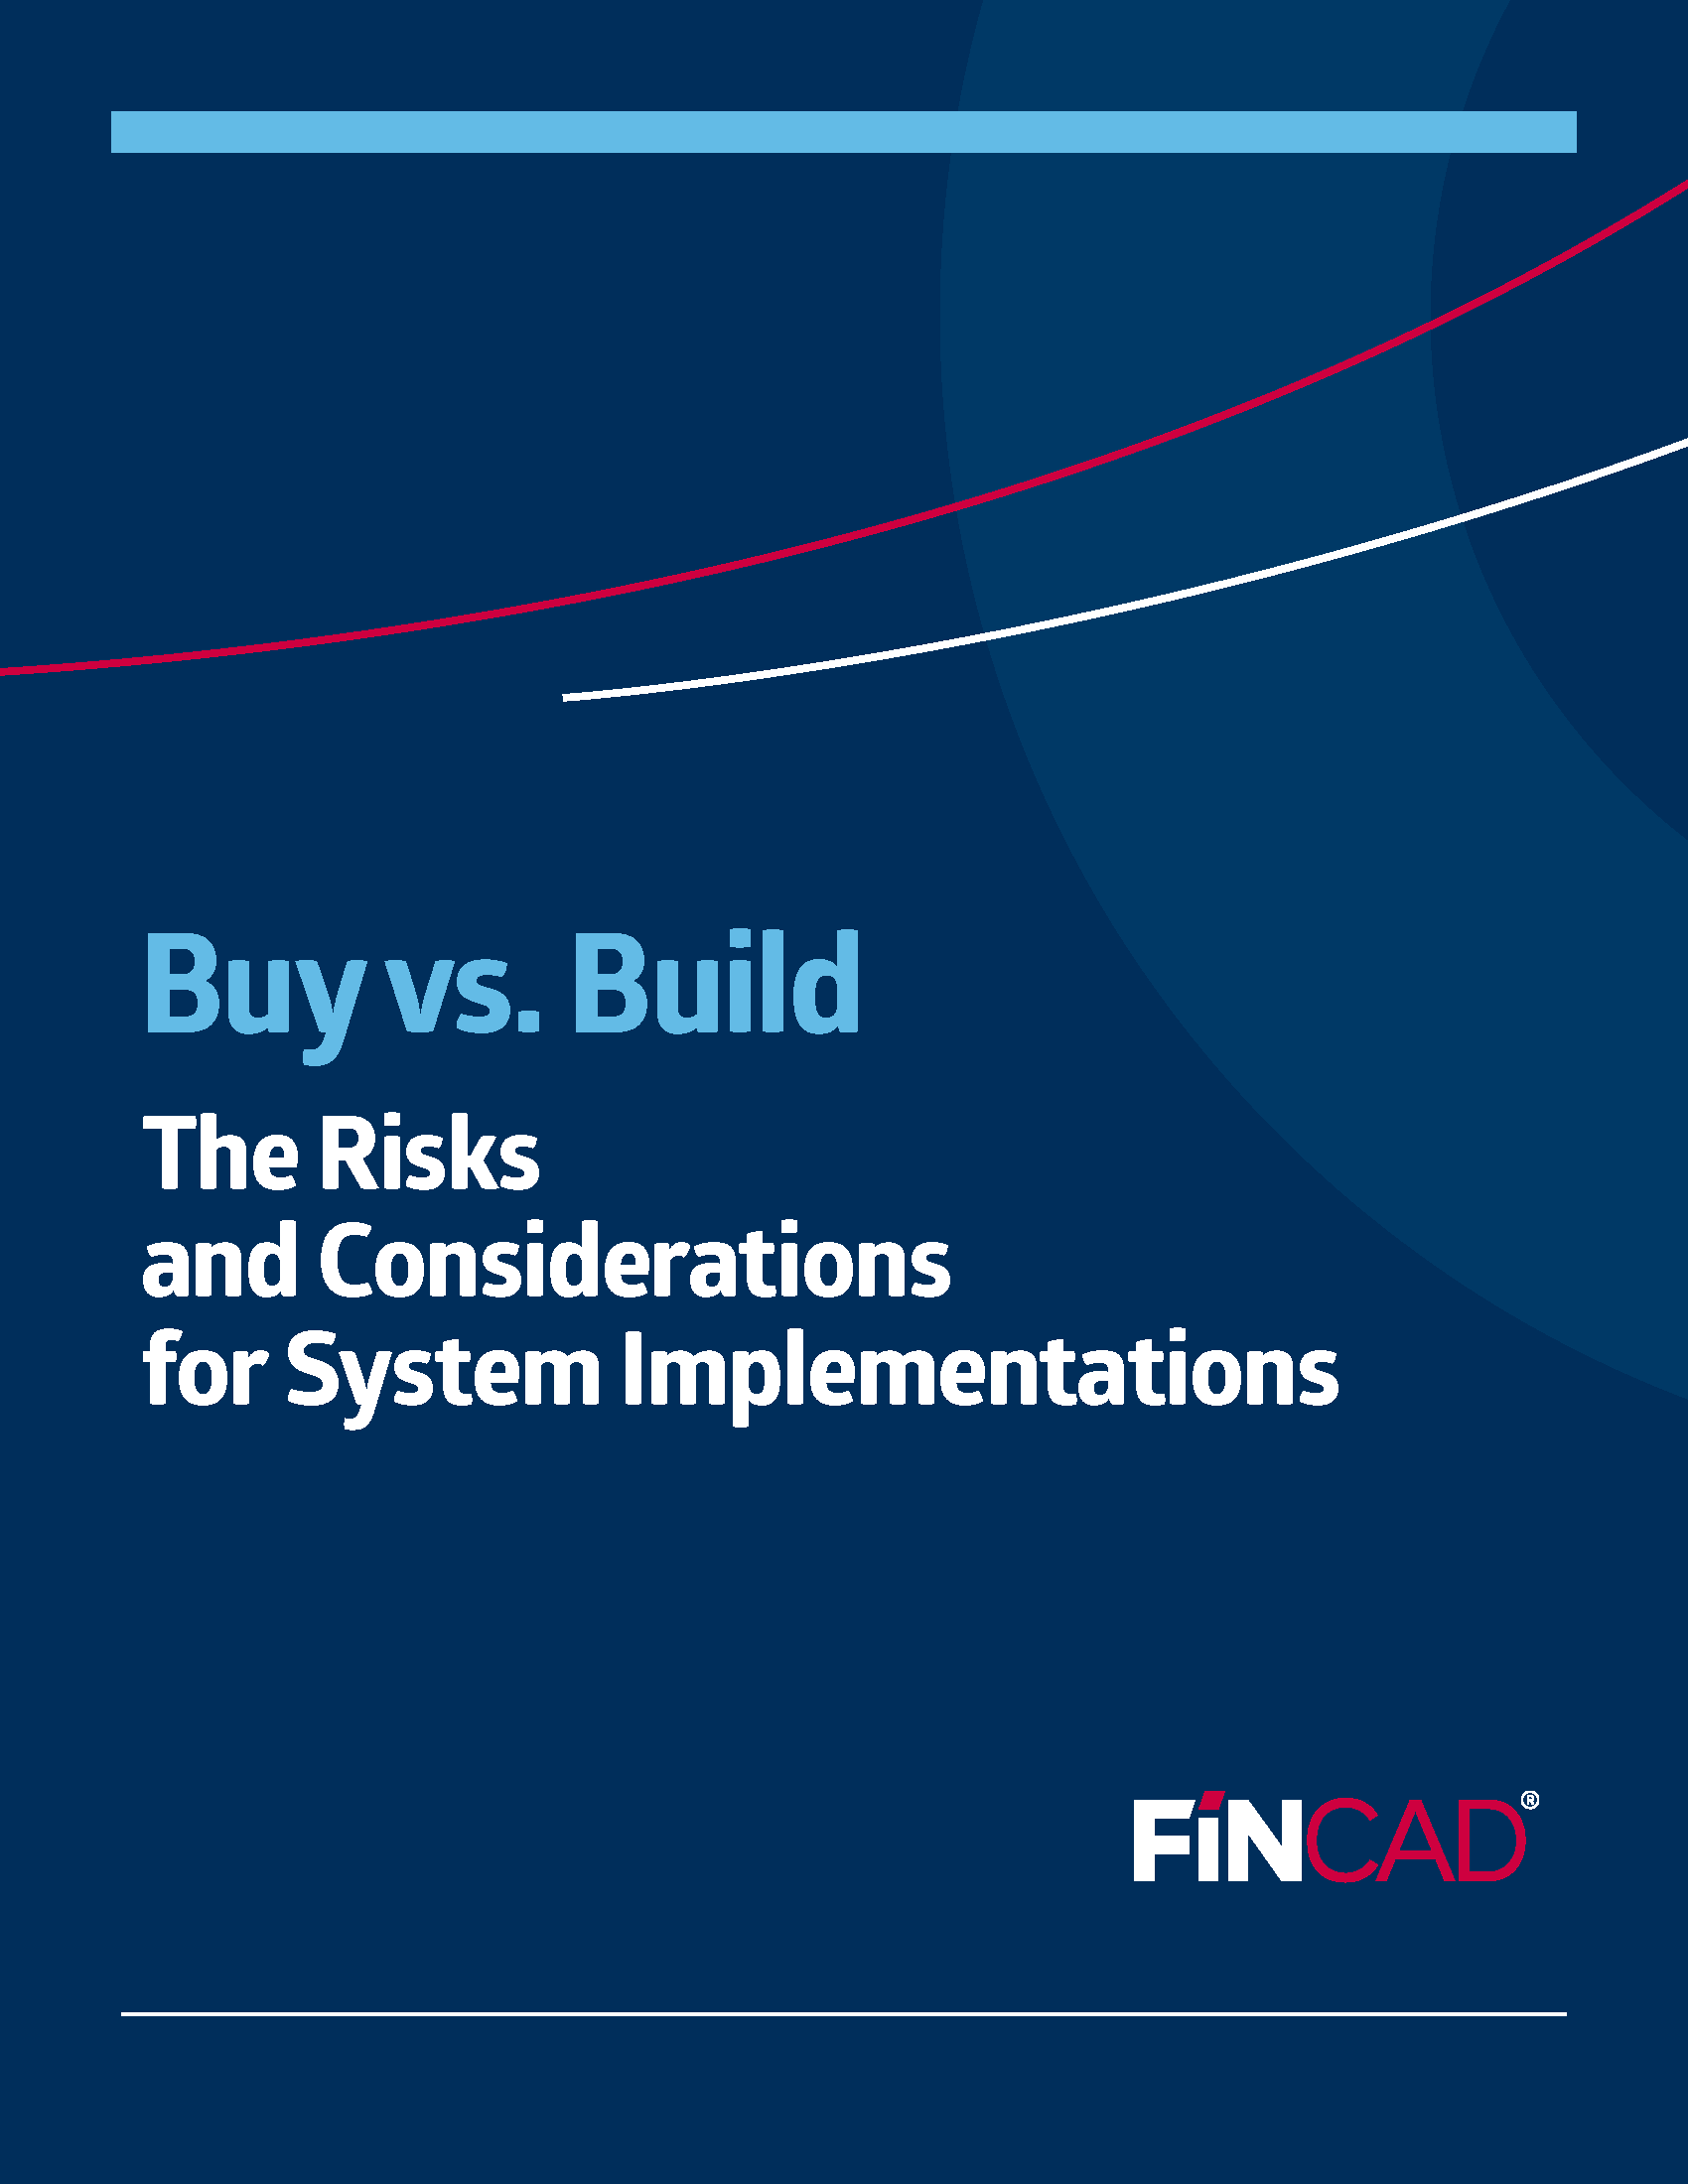 Build vs. Buy: The Risks and Considerations for System Implementations